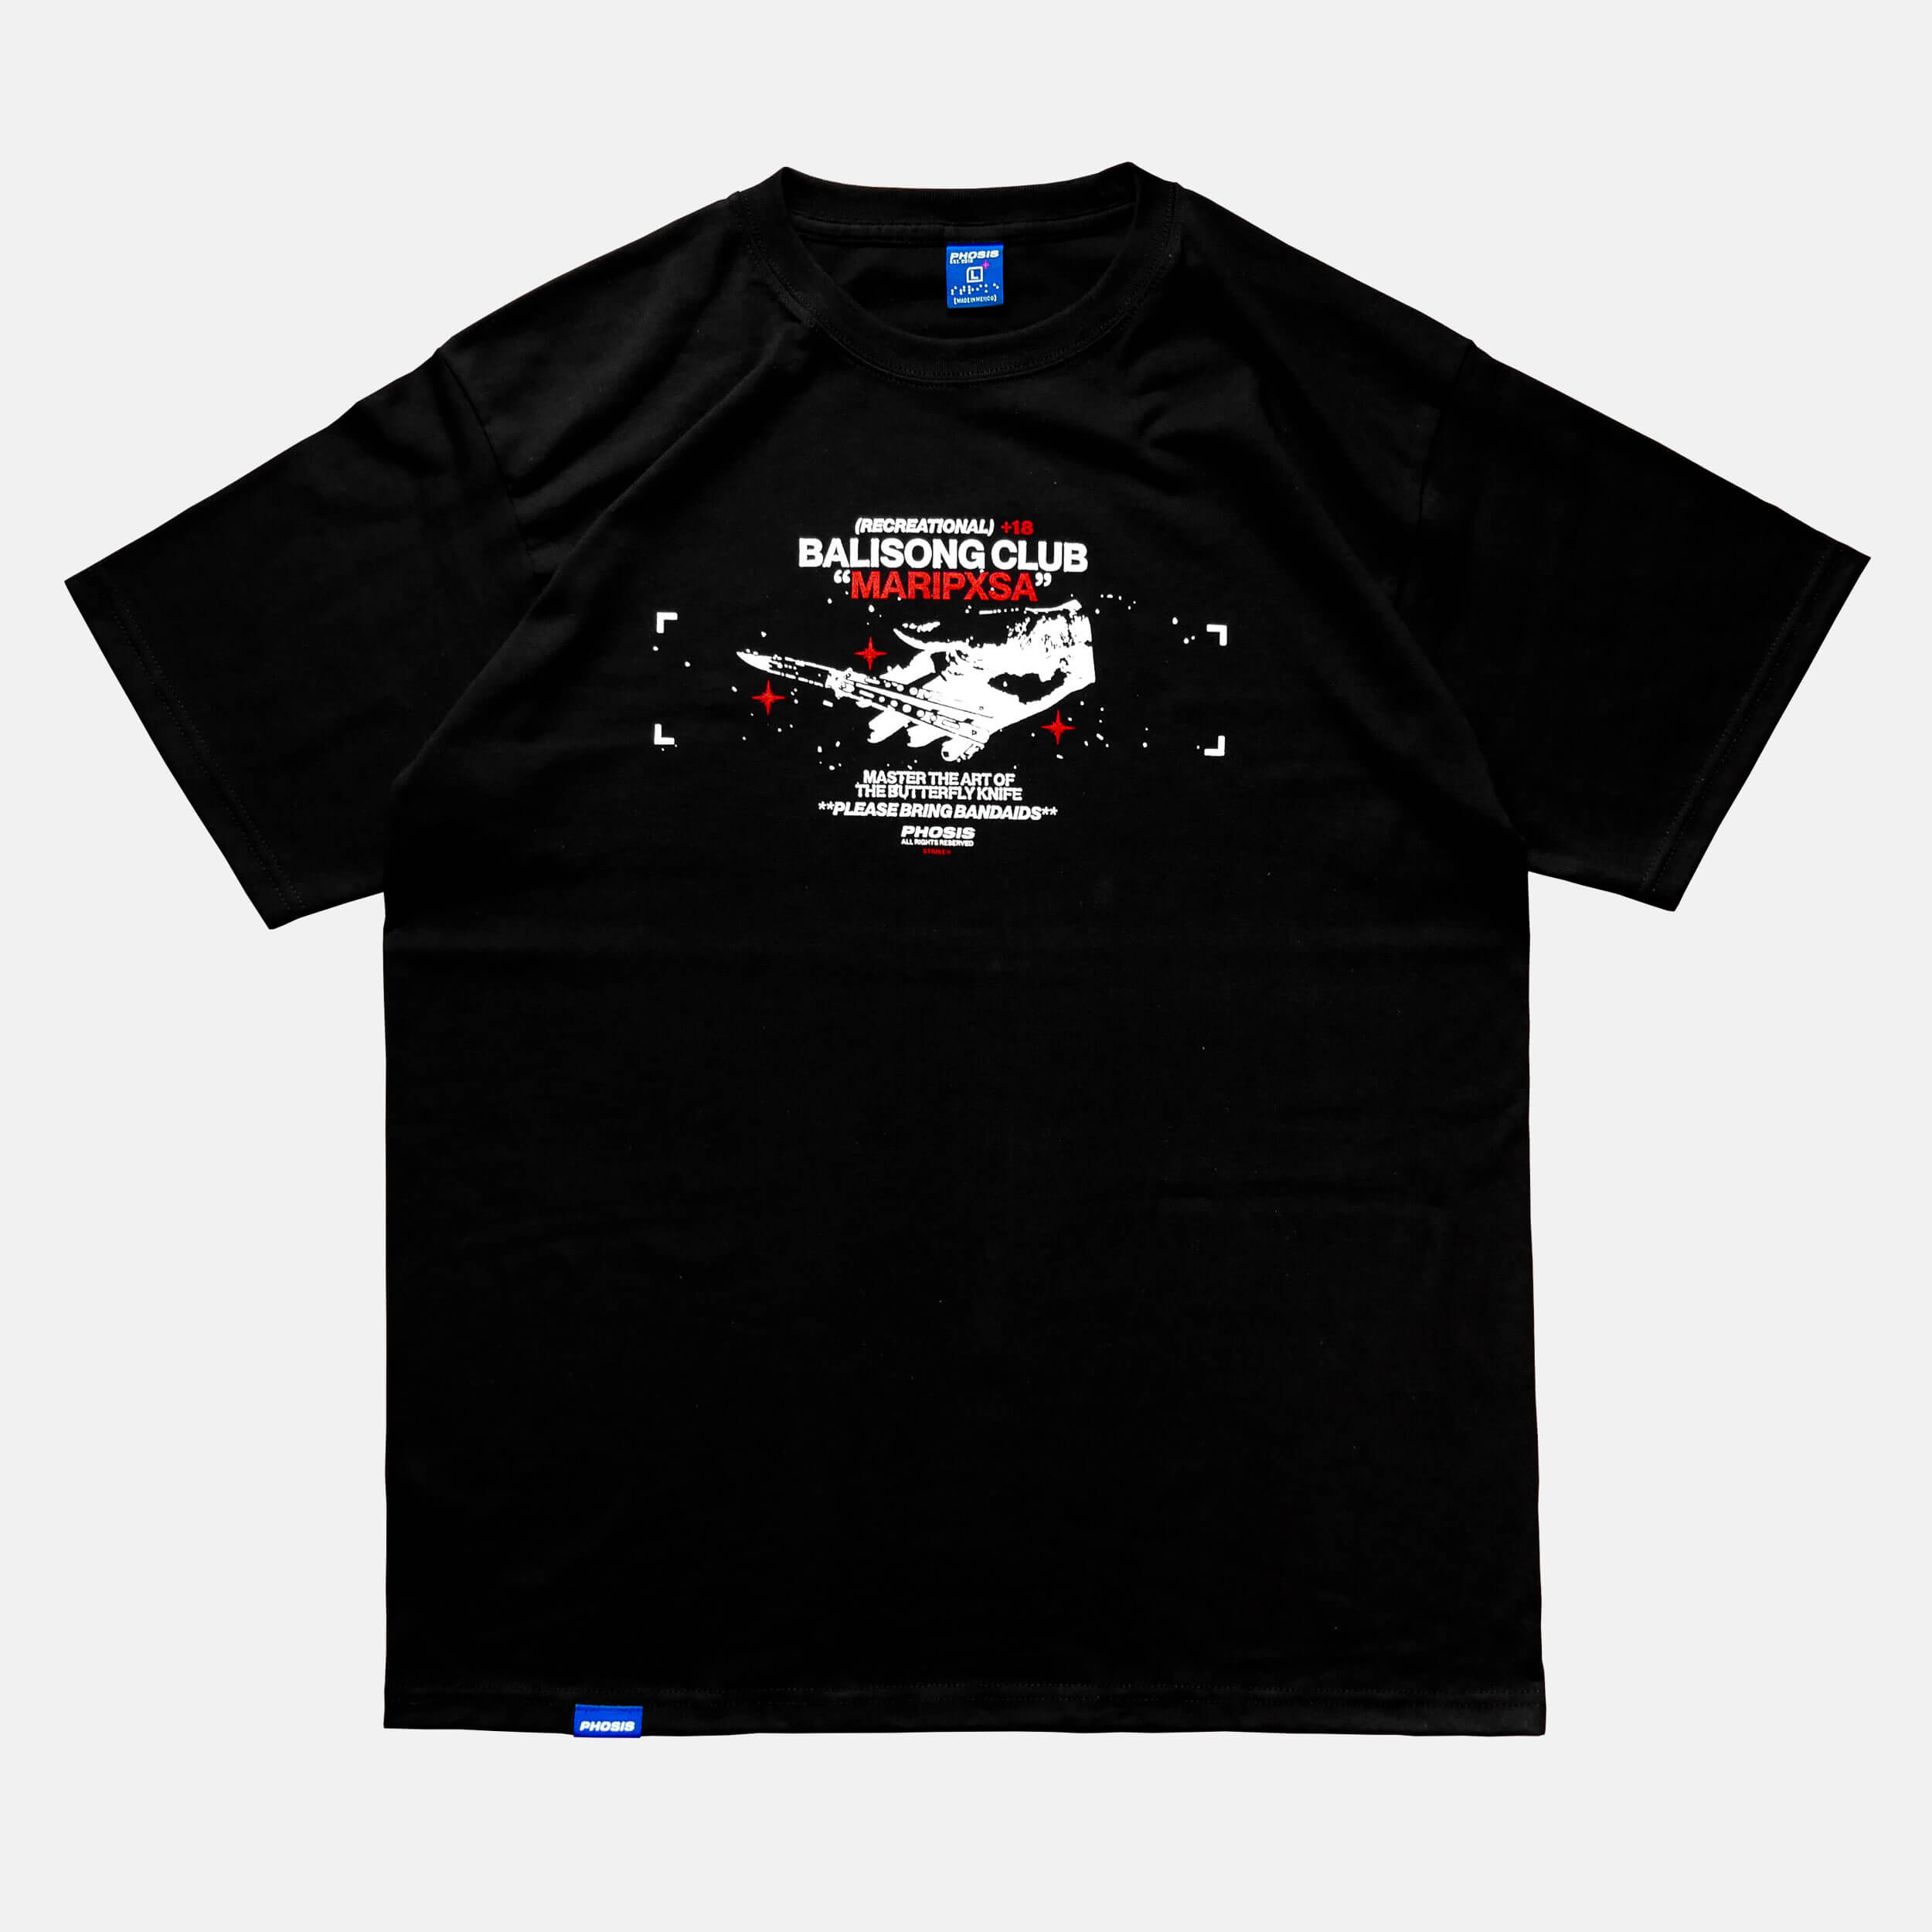 Front view of the screen-pinted 'MARIPXSA' BALISONG CLUB black t-shirt from PHOSIS Clothing